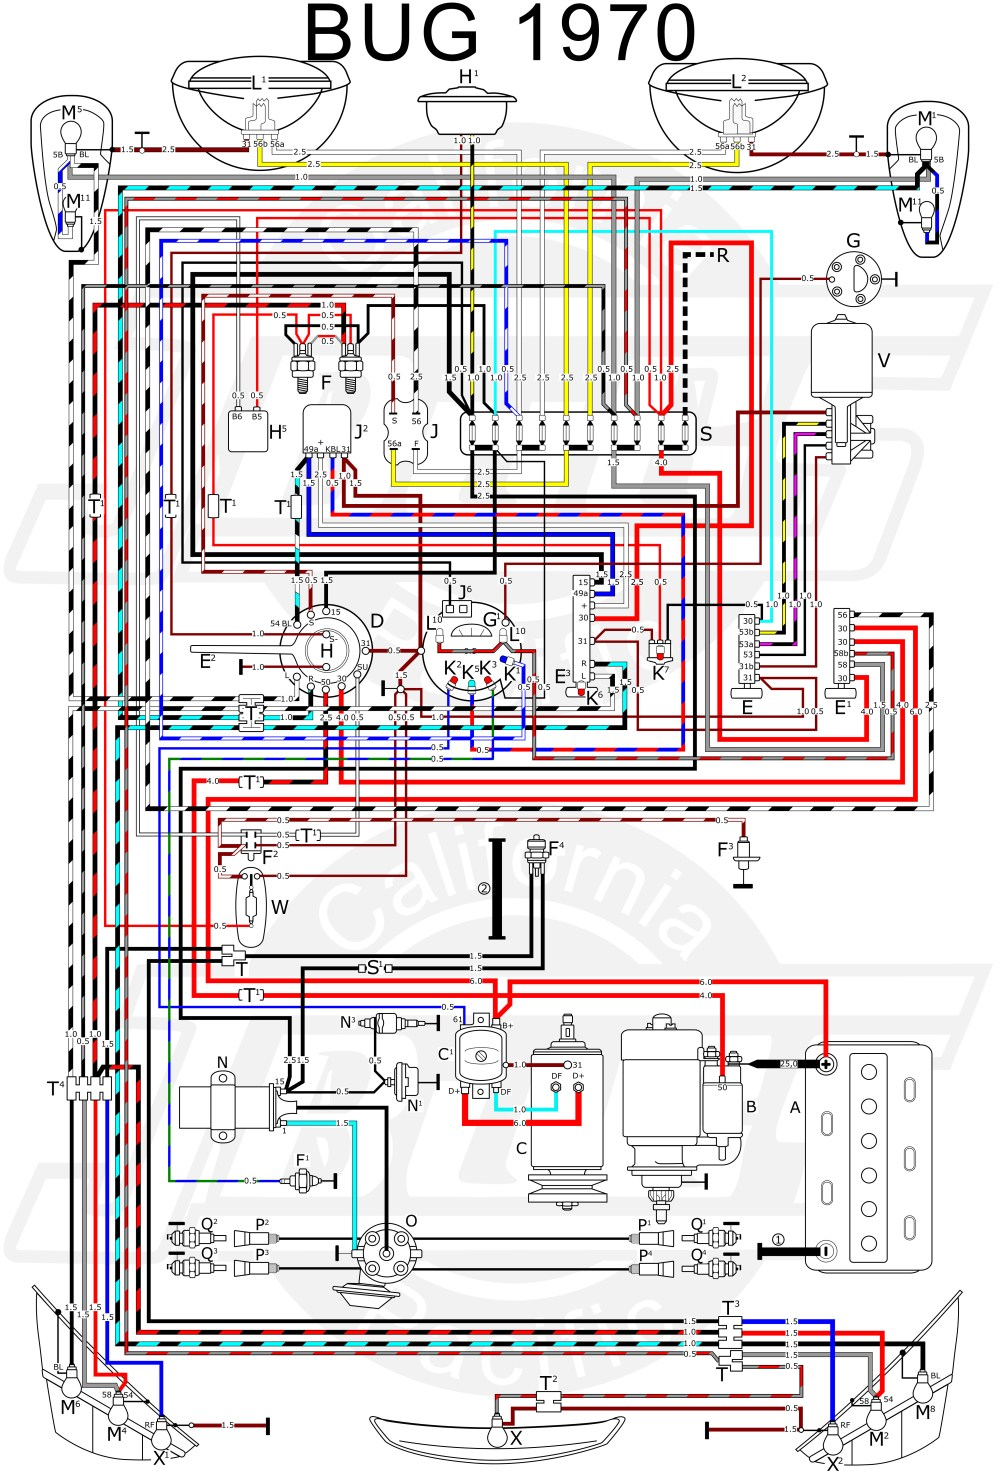 medium resolution of 1972 vw bus engine diagram wire management wiring diagram 1972 vw bus engine diagram wiring